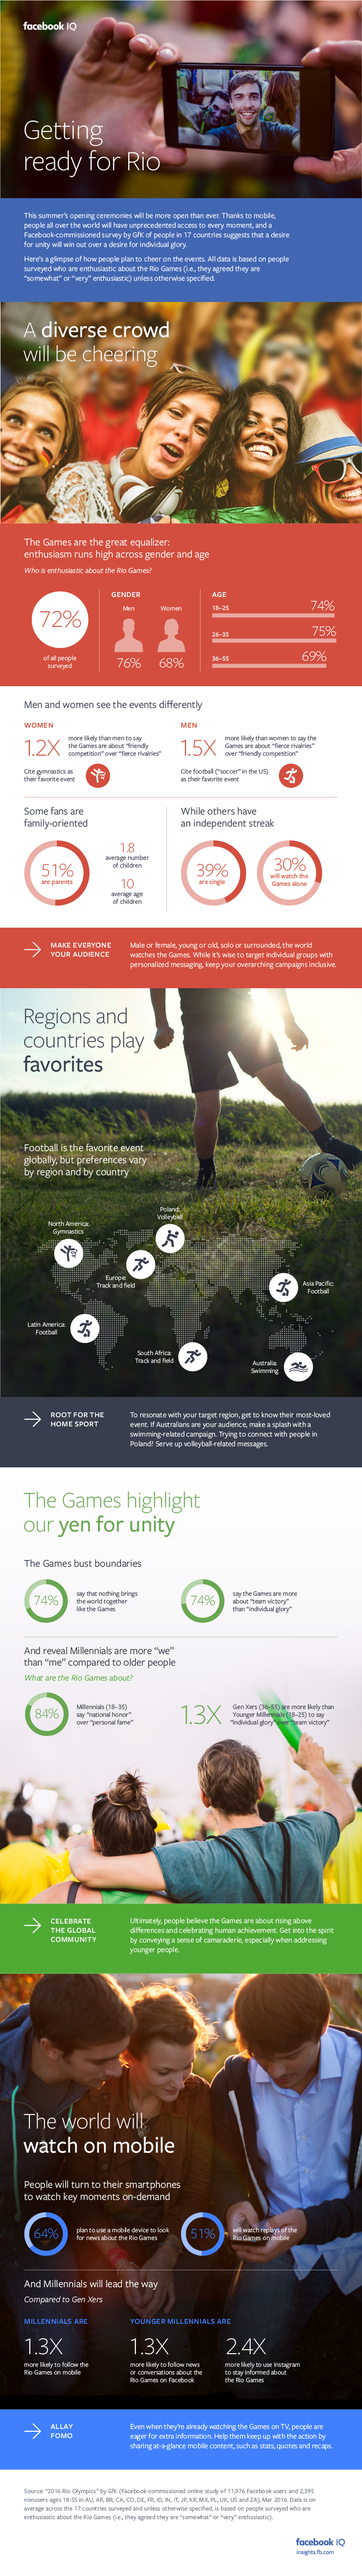 Facebook Releases New Research into How People Plan to Celebrate the Olympics [Infographic] | Social Media Today